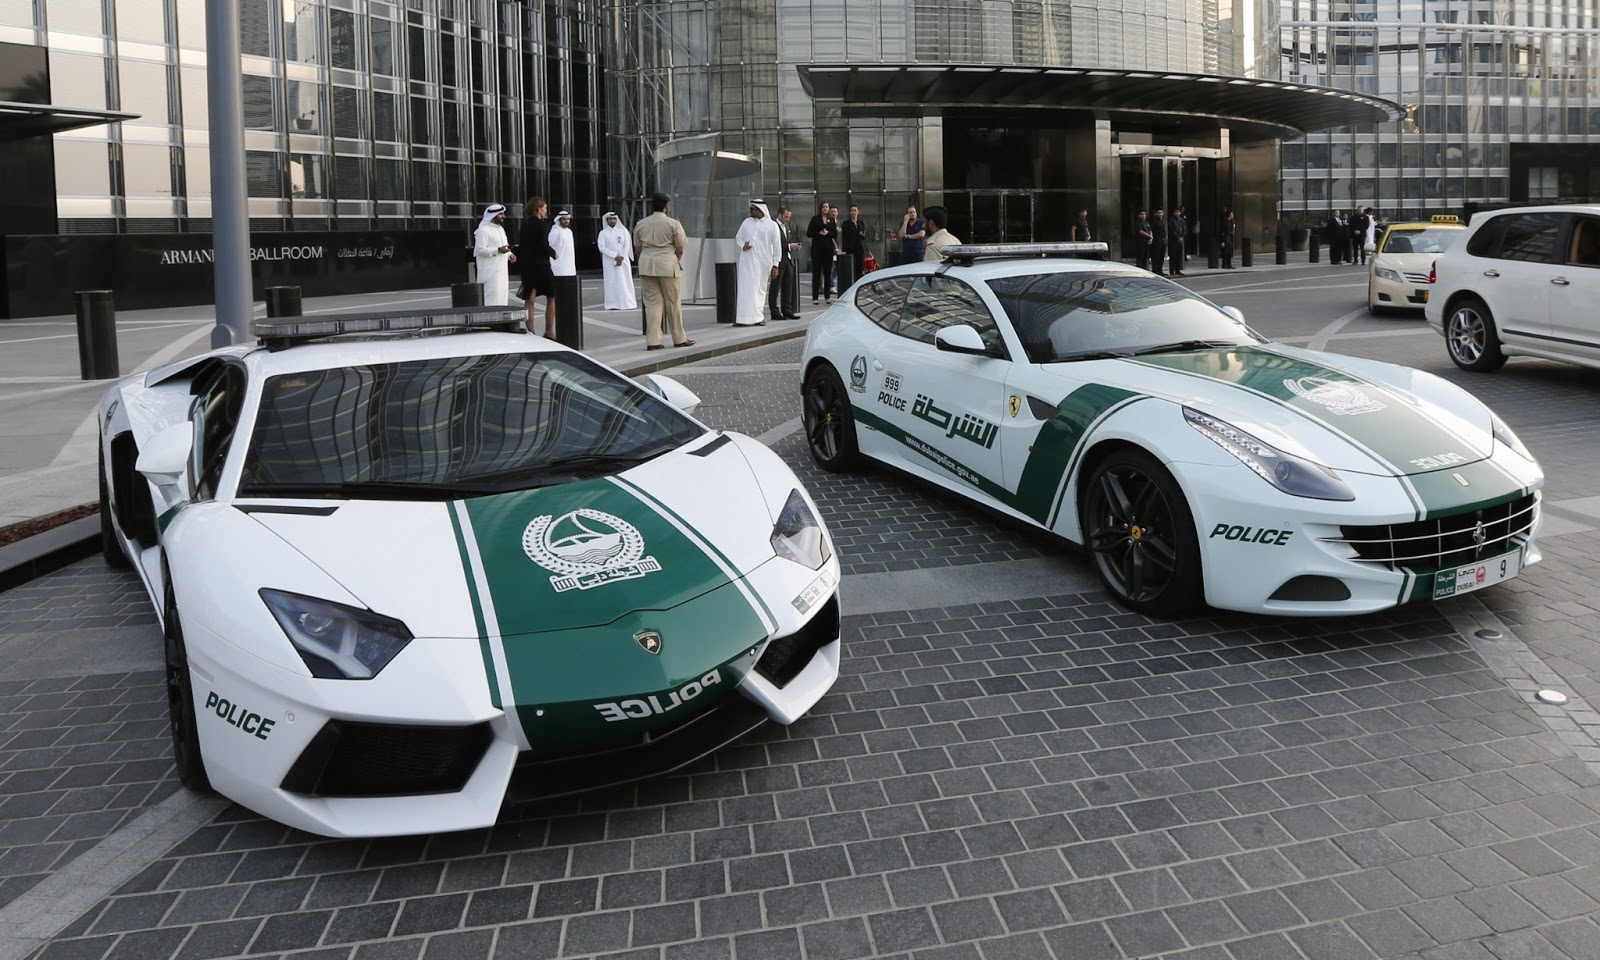 Latest Bollywood Hd Wallpapers Dubai Police Cars Hd Wallpapers High Definition Free